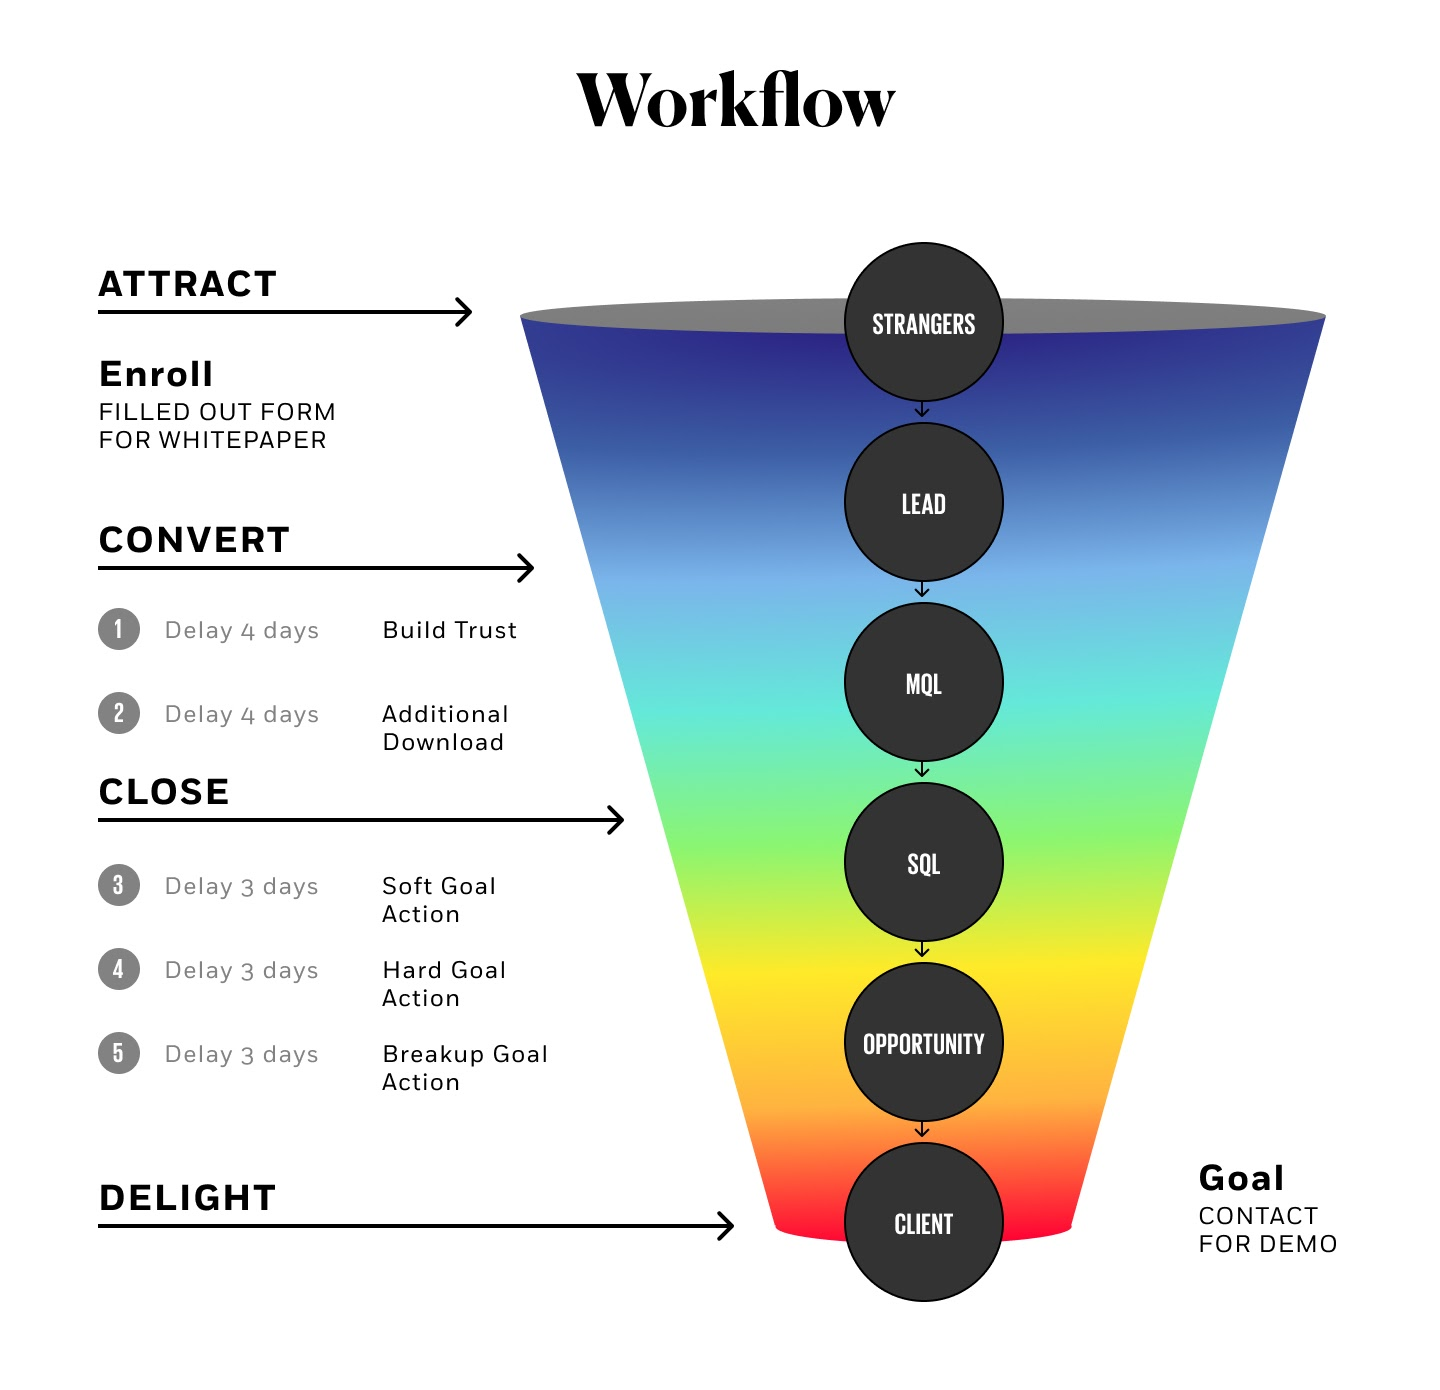 Example of a digital marketing workflow process in Inbound Marketing